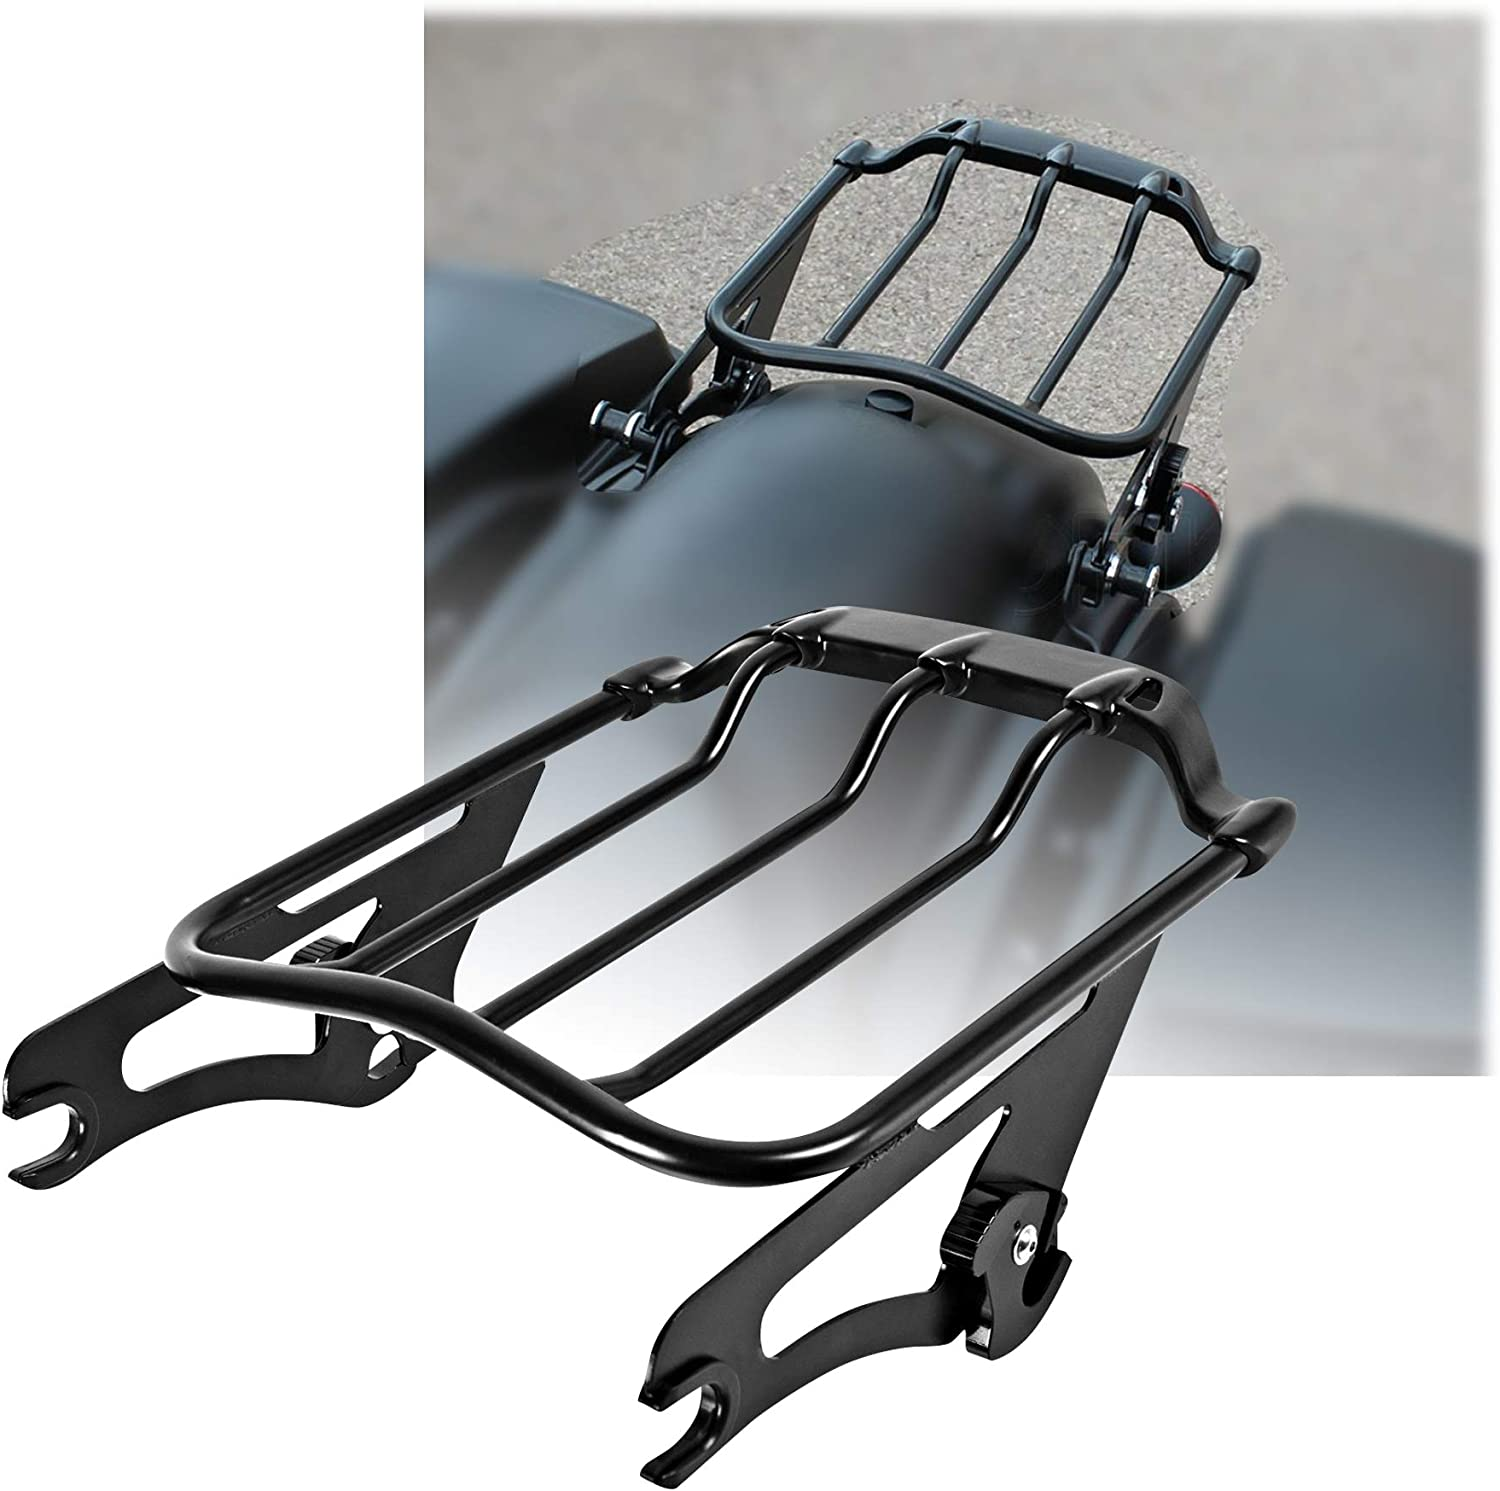 Fits 2014-2020 4-point Docking Hardware Kit And Air Wing Detachables Two-Up Luggage Rack for Street Glide FLHX Electra Glide Standard FLHT Road Glide FLTRX CVO FLTRXSE FLHXSE Road King FLHR